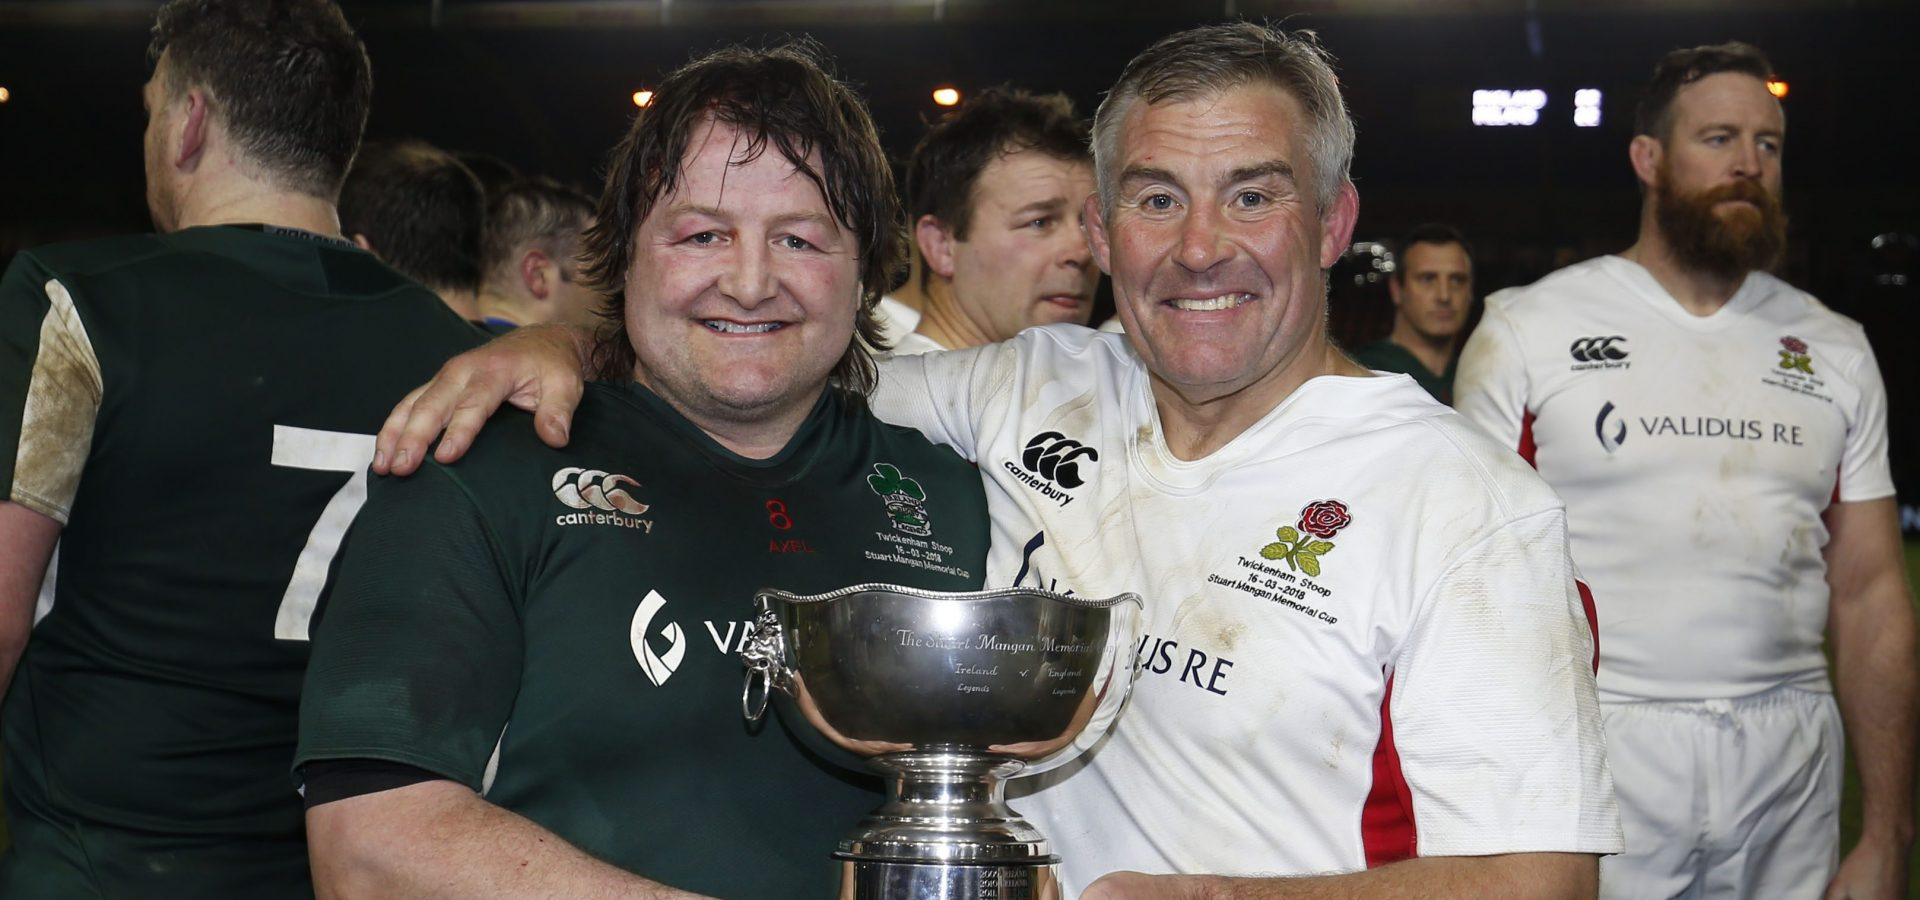 RUGBY LEGENDS TO HELP RUGBY GREAT